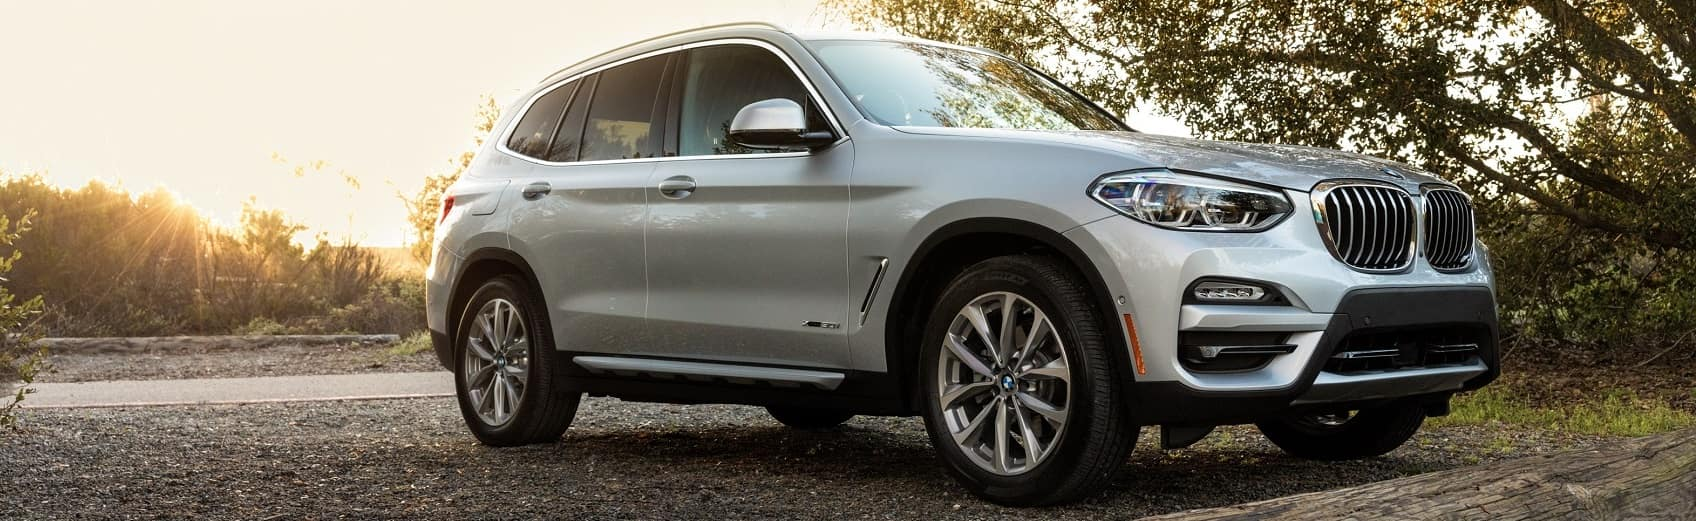 BMW X3 vs Audi Q5 Manhattan